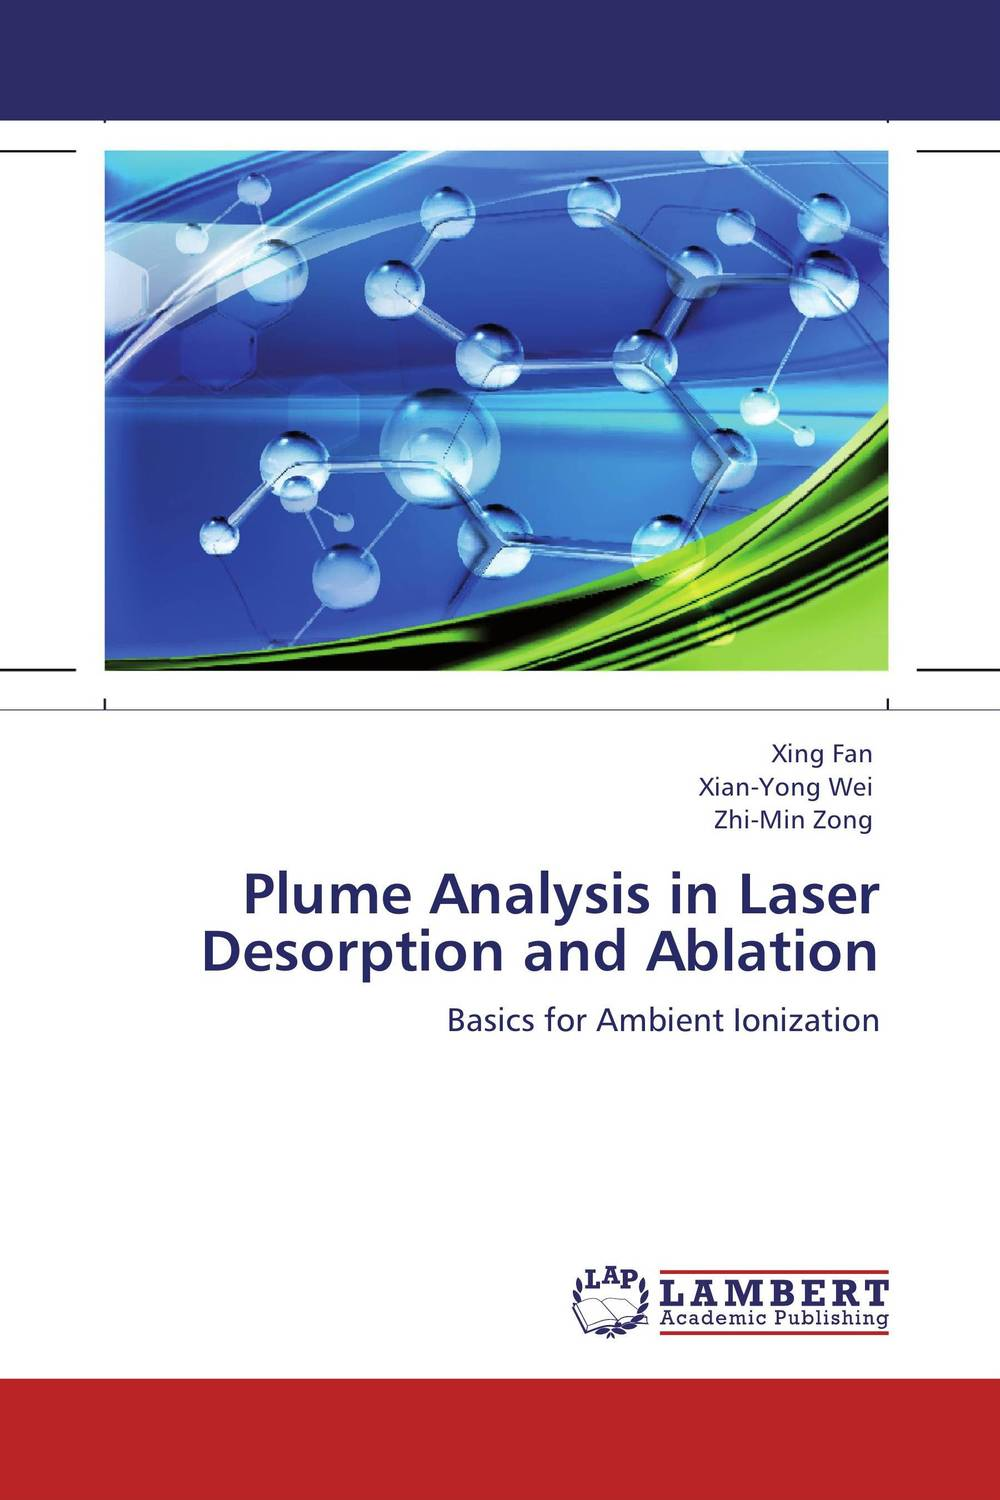 Plume Analysis in Laser Desorption and Ablation infrared allergic rhinitis treatment machine hay fever chronic rhinitis laser therapeutic apparatus